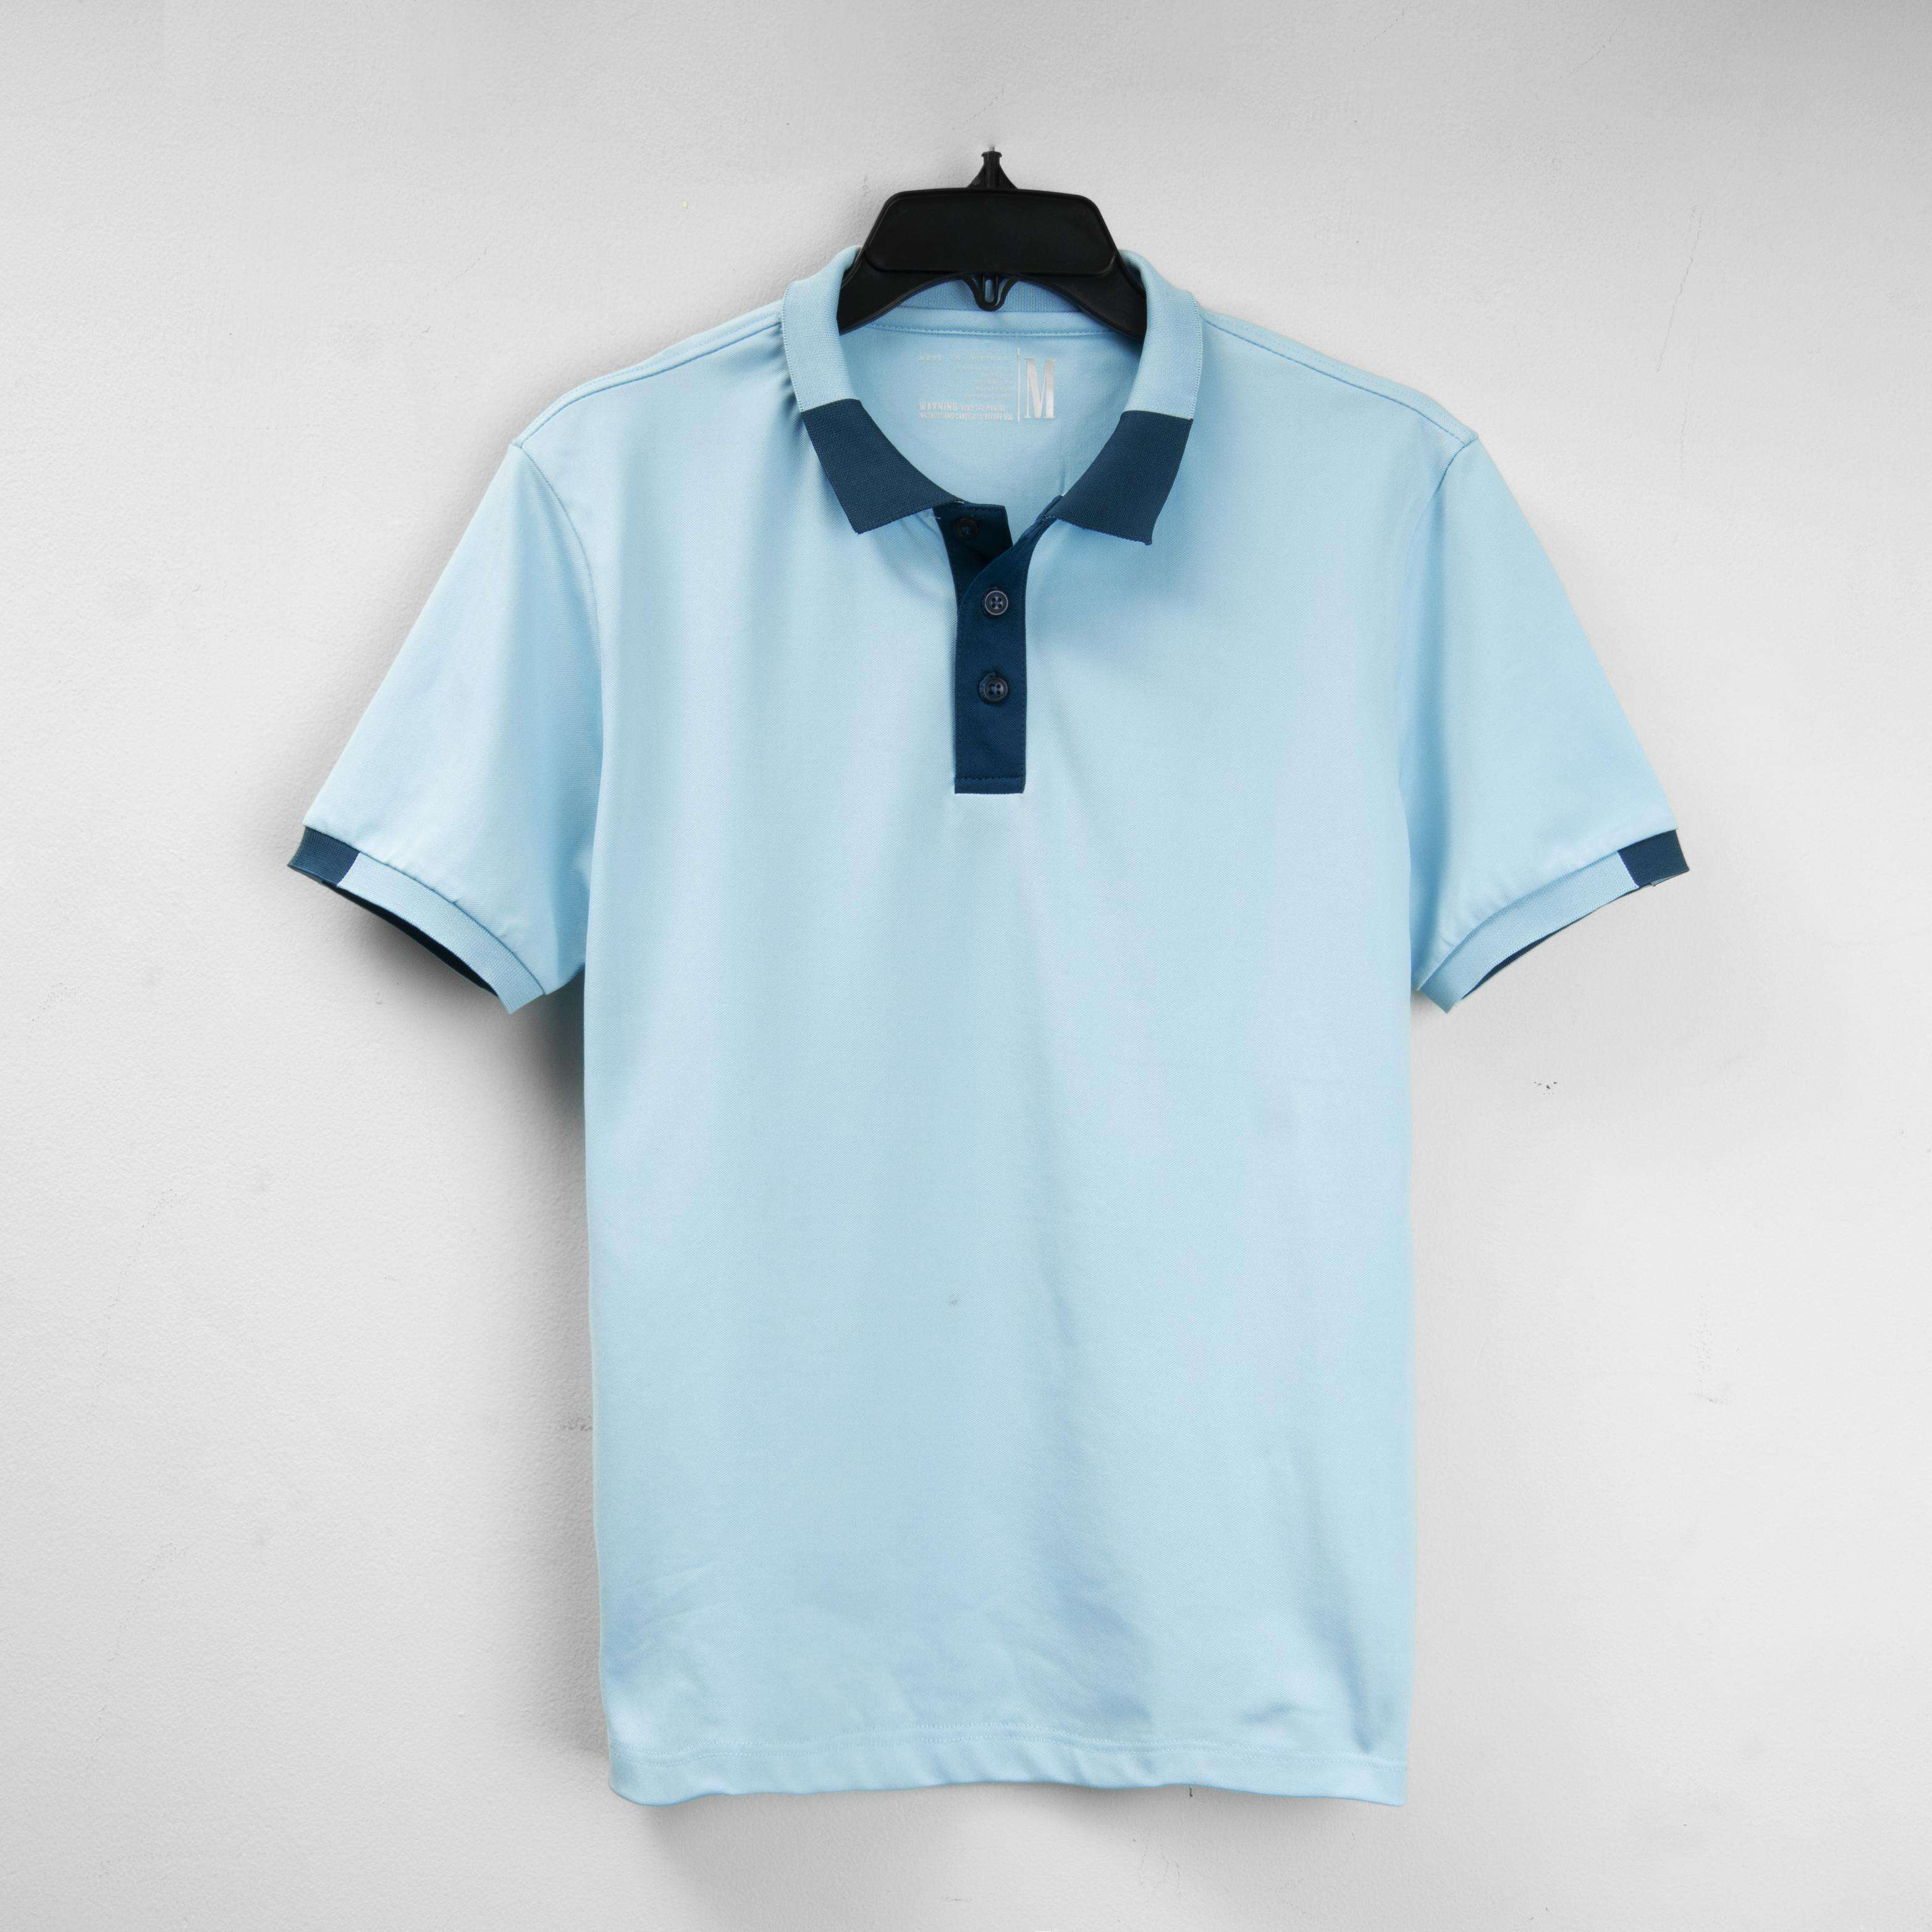 POLO LIGHT BLUE Clothing Bamboo Men Casual Quantity Custom Print Mens Oem Customized Anti Customs Gsm